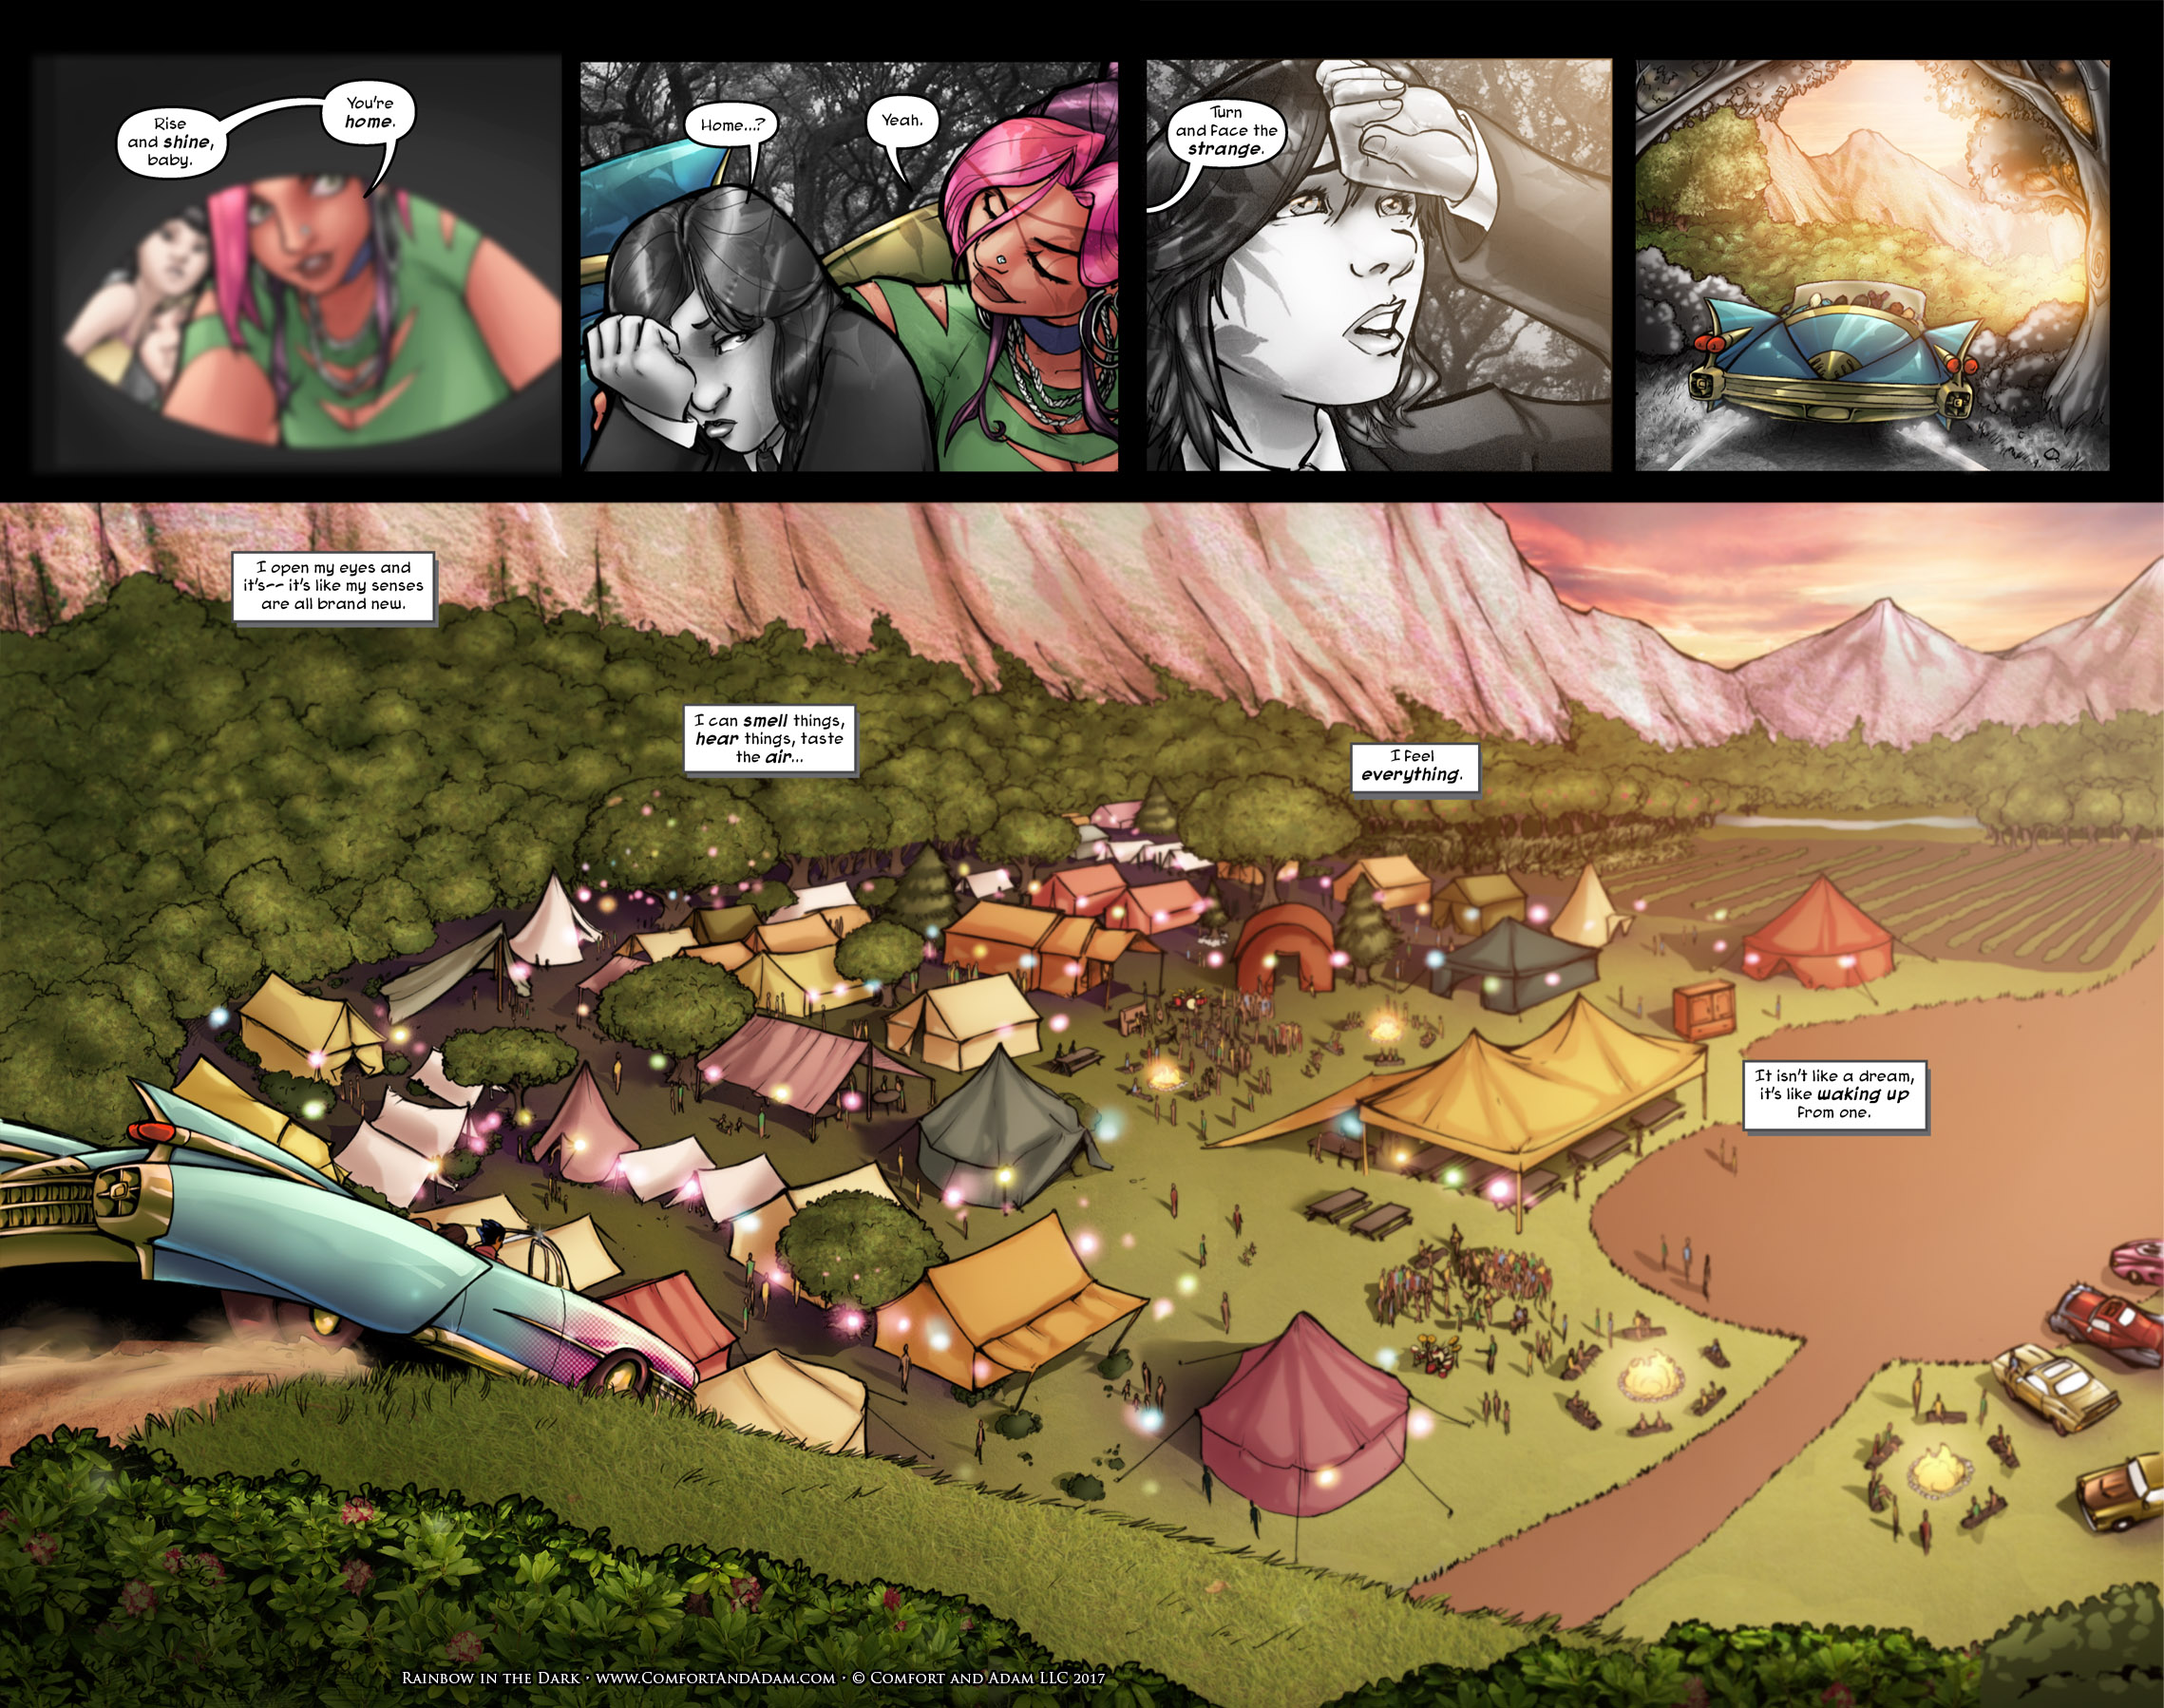 Rainbow in the Dark #1 pg. 23: The Camp